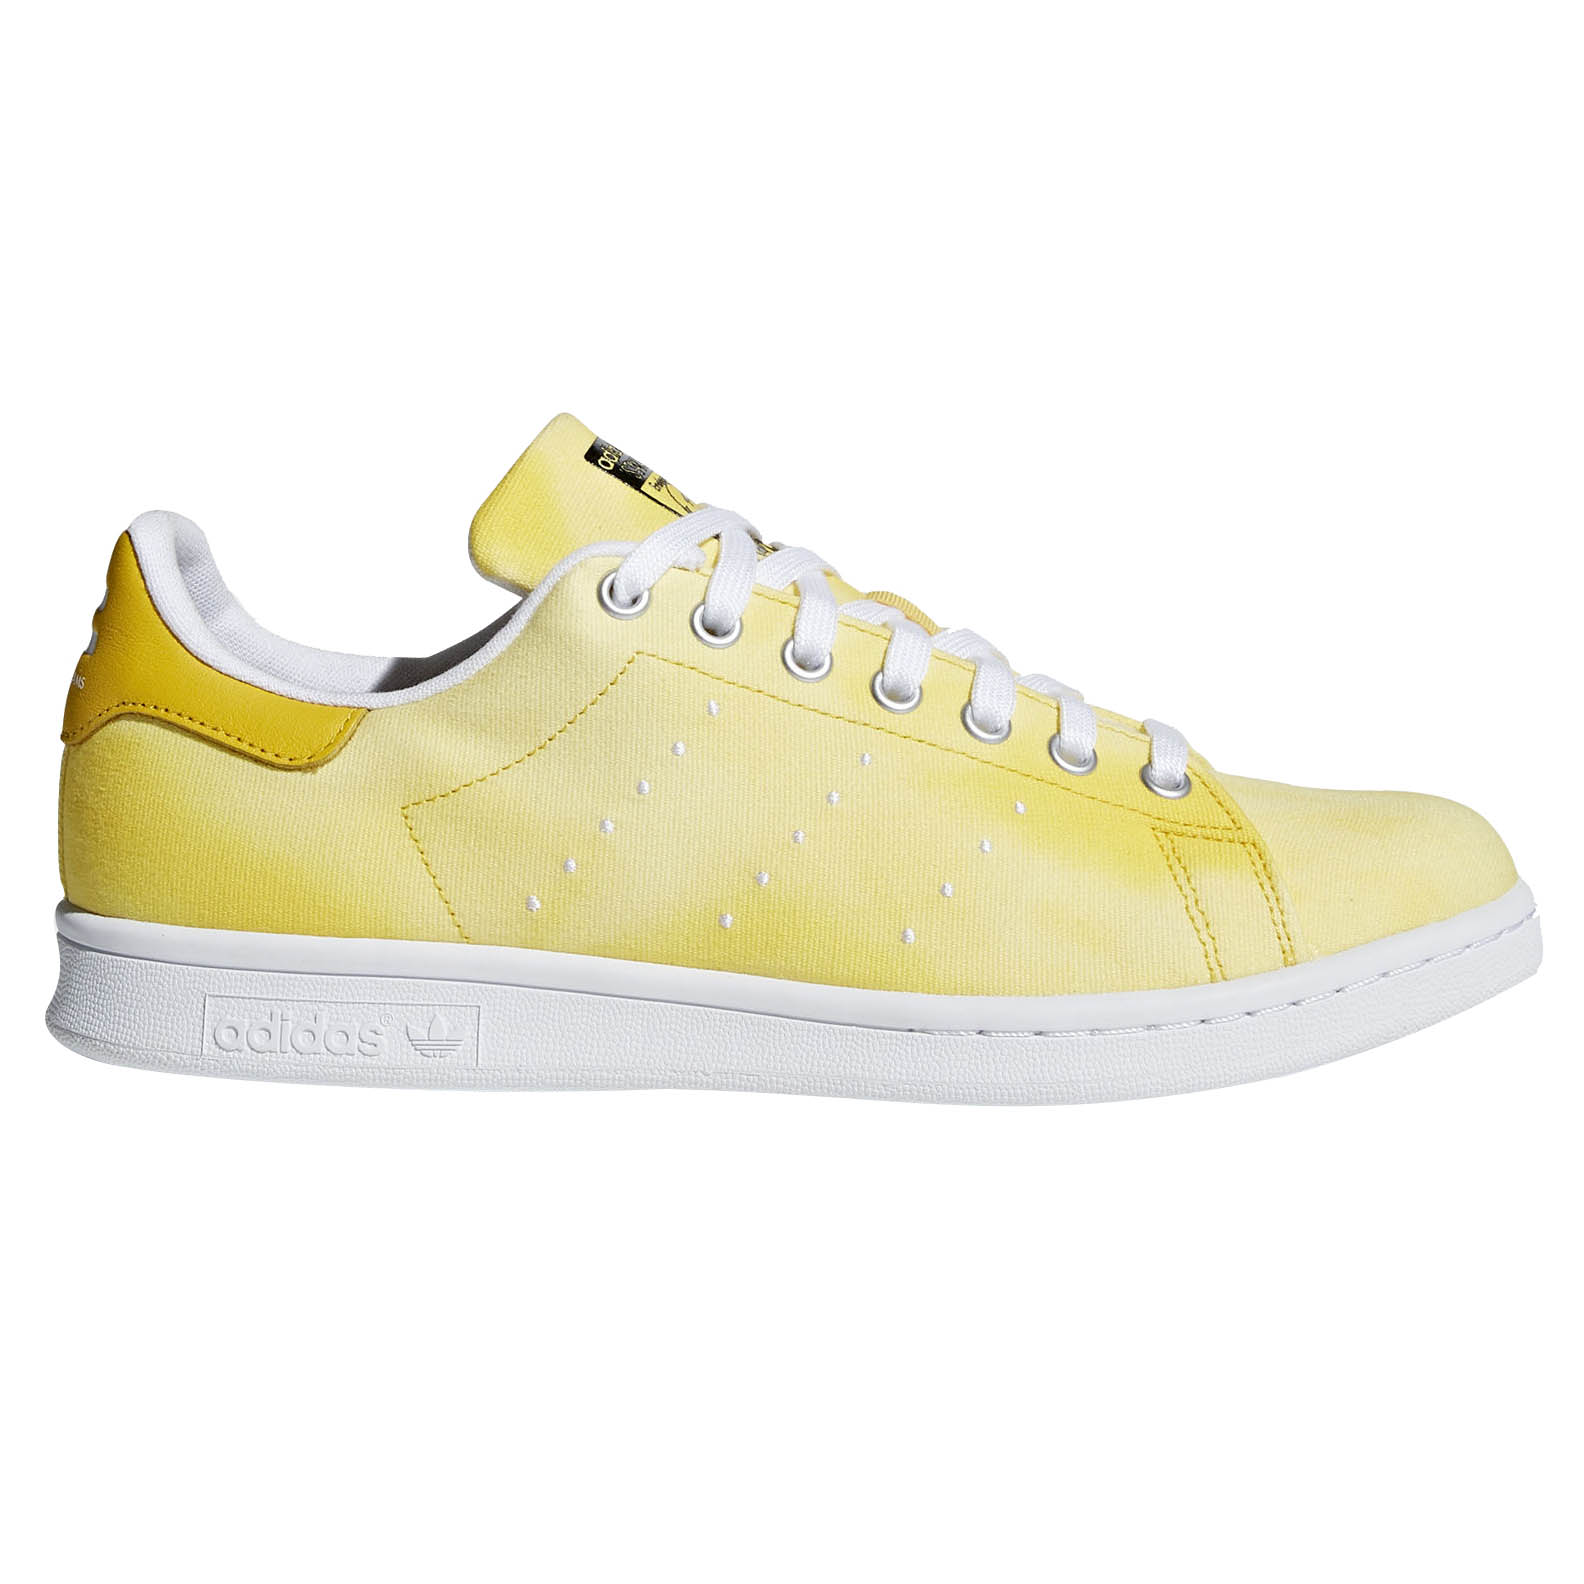 check out e98dc 76dbc Adidas Original Pw Hu Holi Stan Smith - Sneakers   Nencini Sport